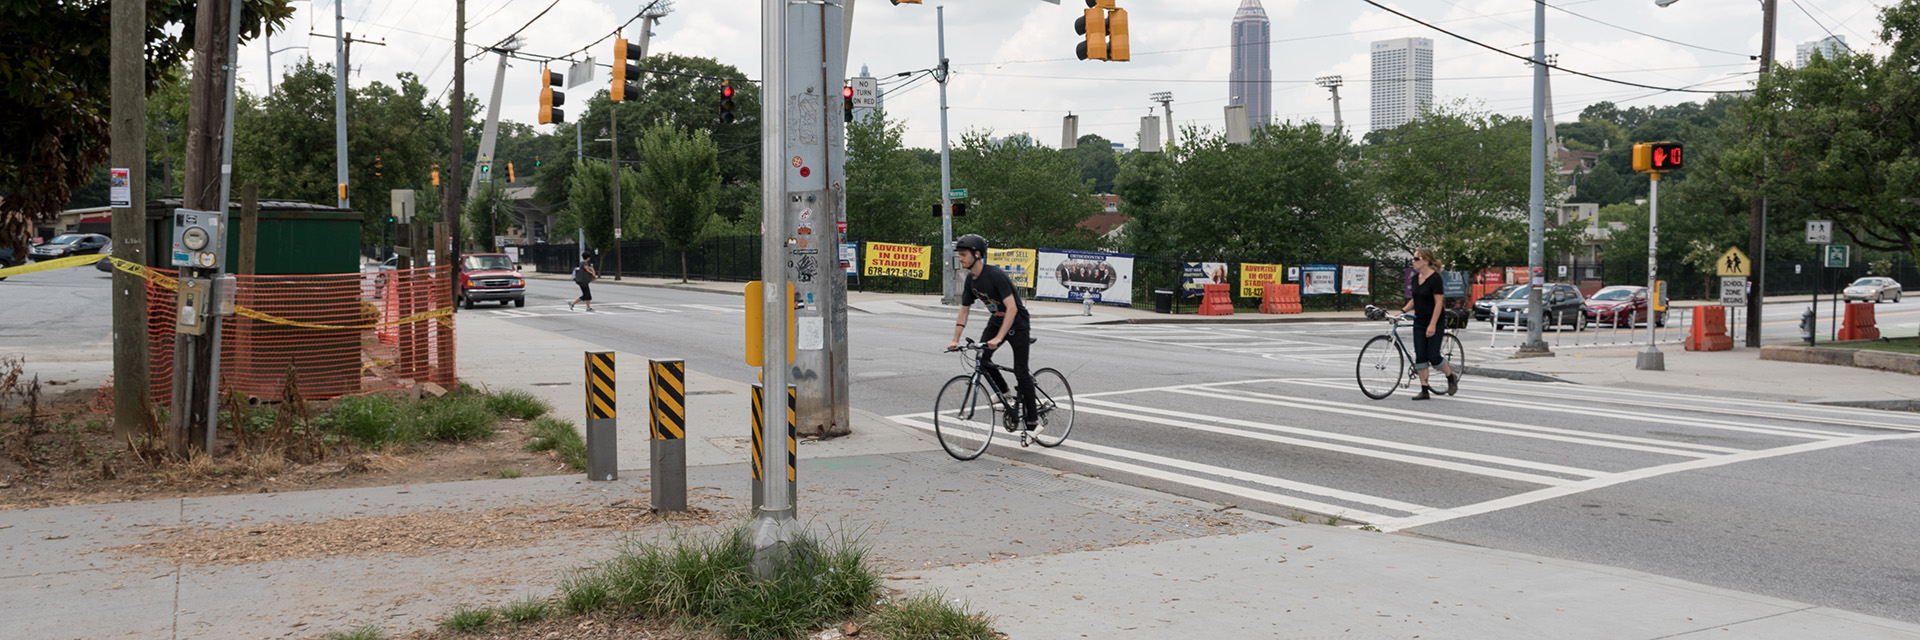 An image of cyclists crossing an urban intersection.